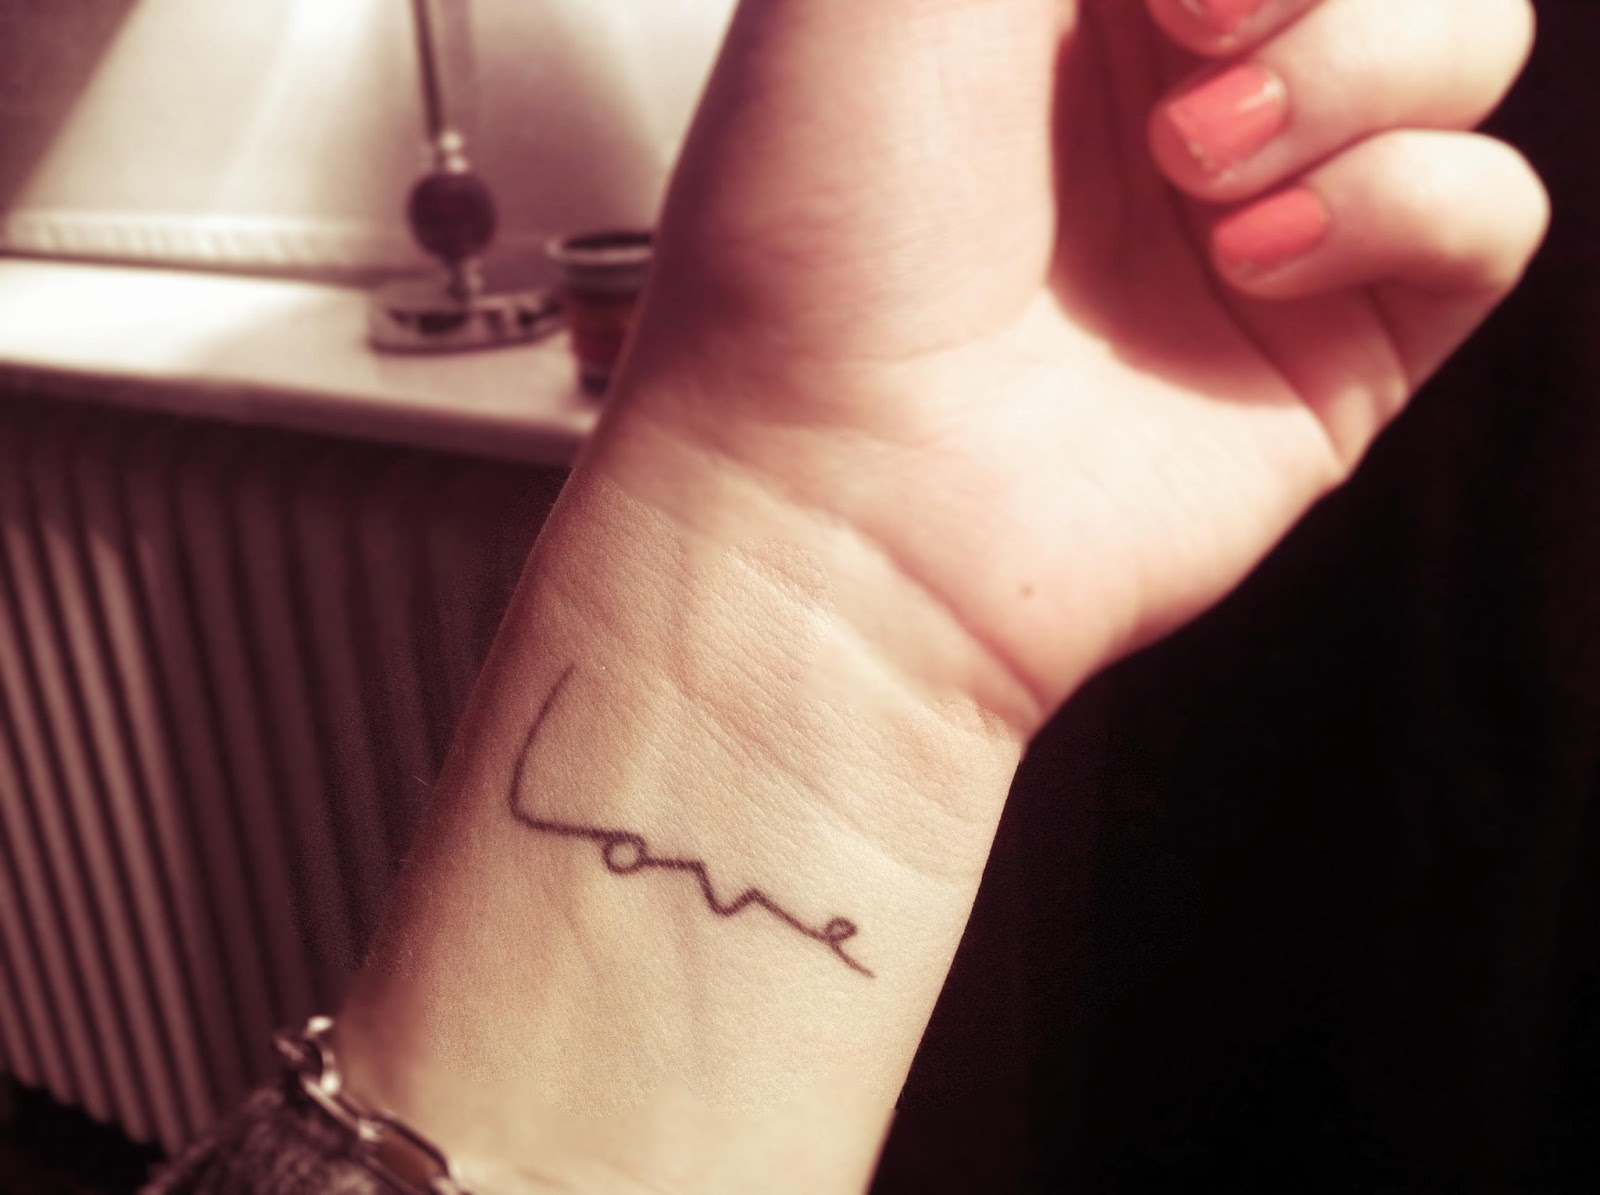 Wrist Tattoos Girls Tumblr Tumblr Tattoo: Tattoos...